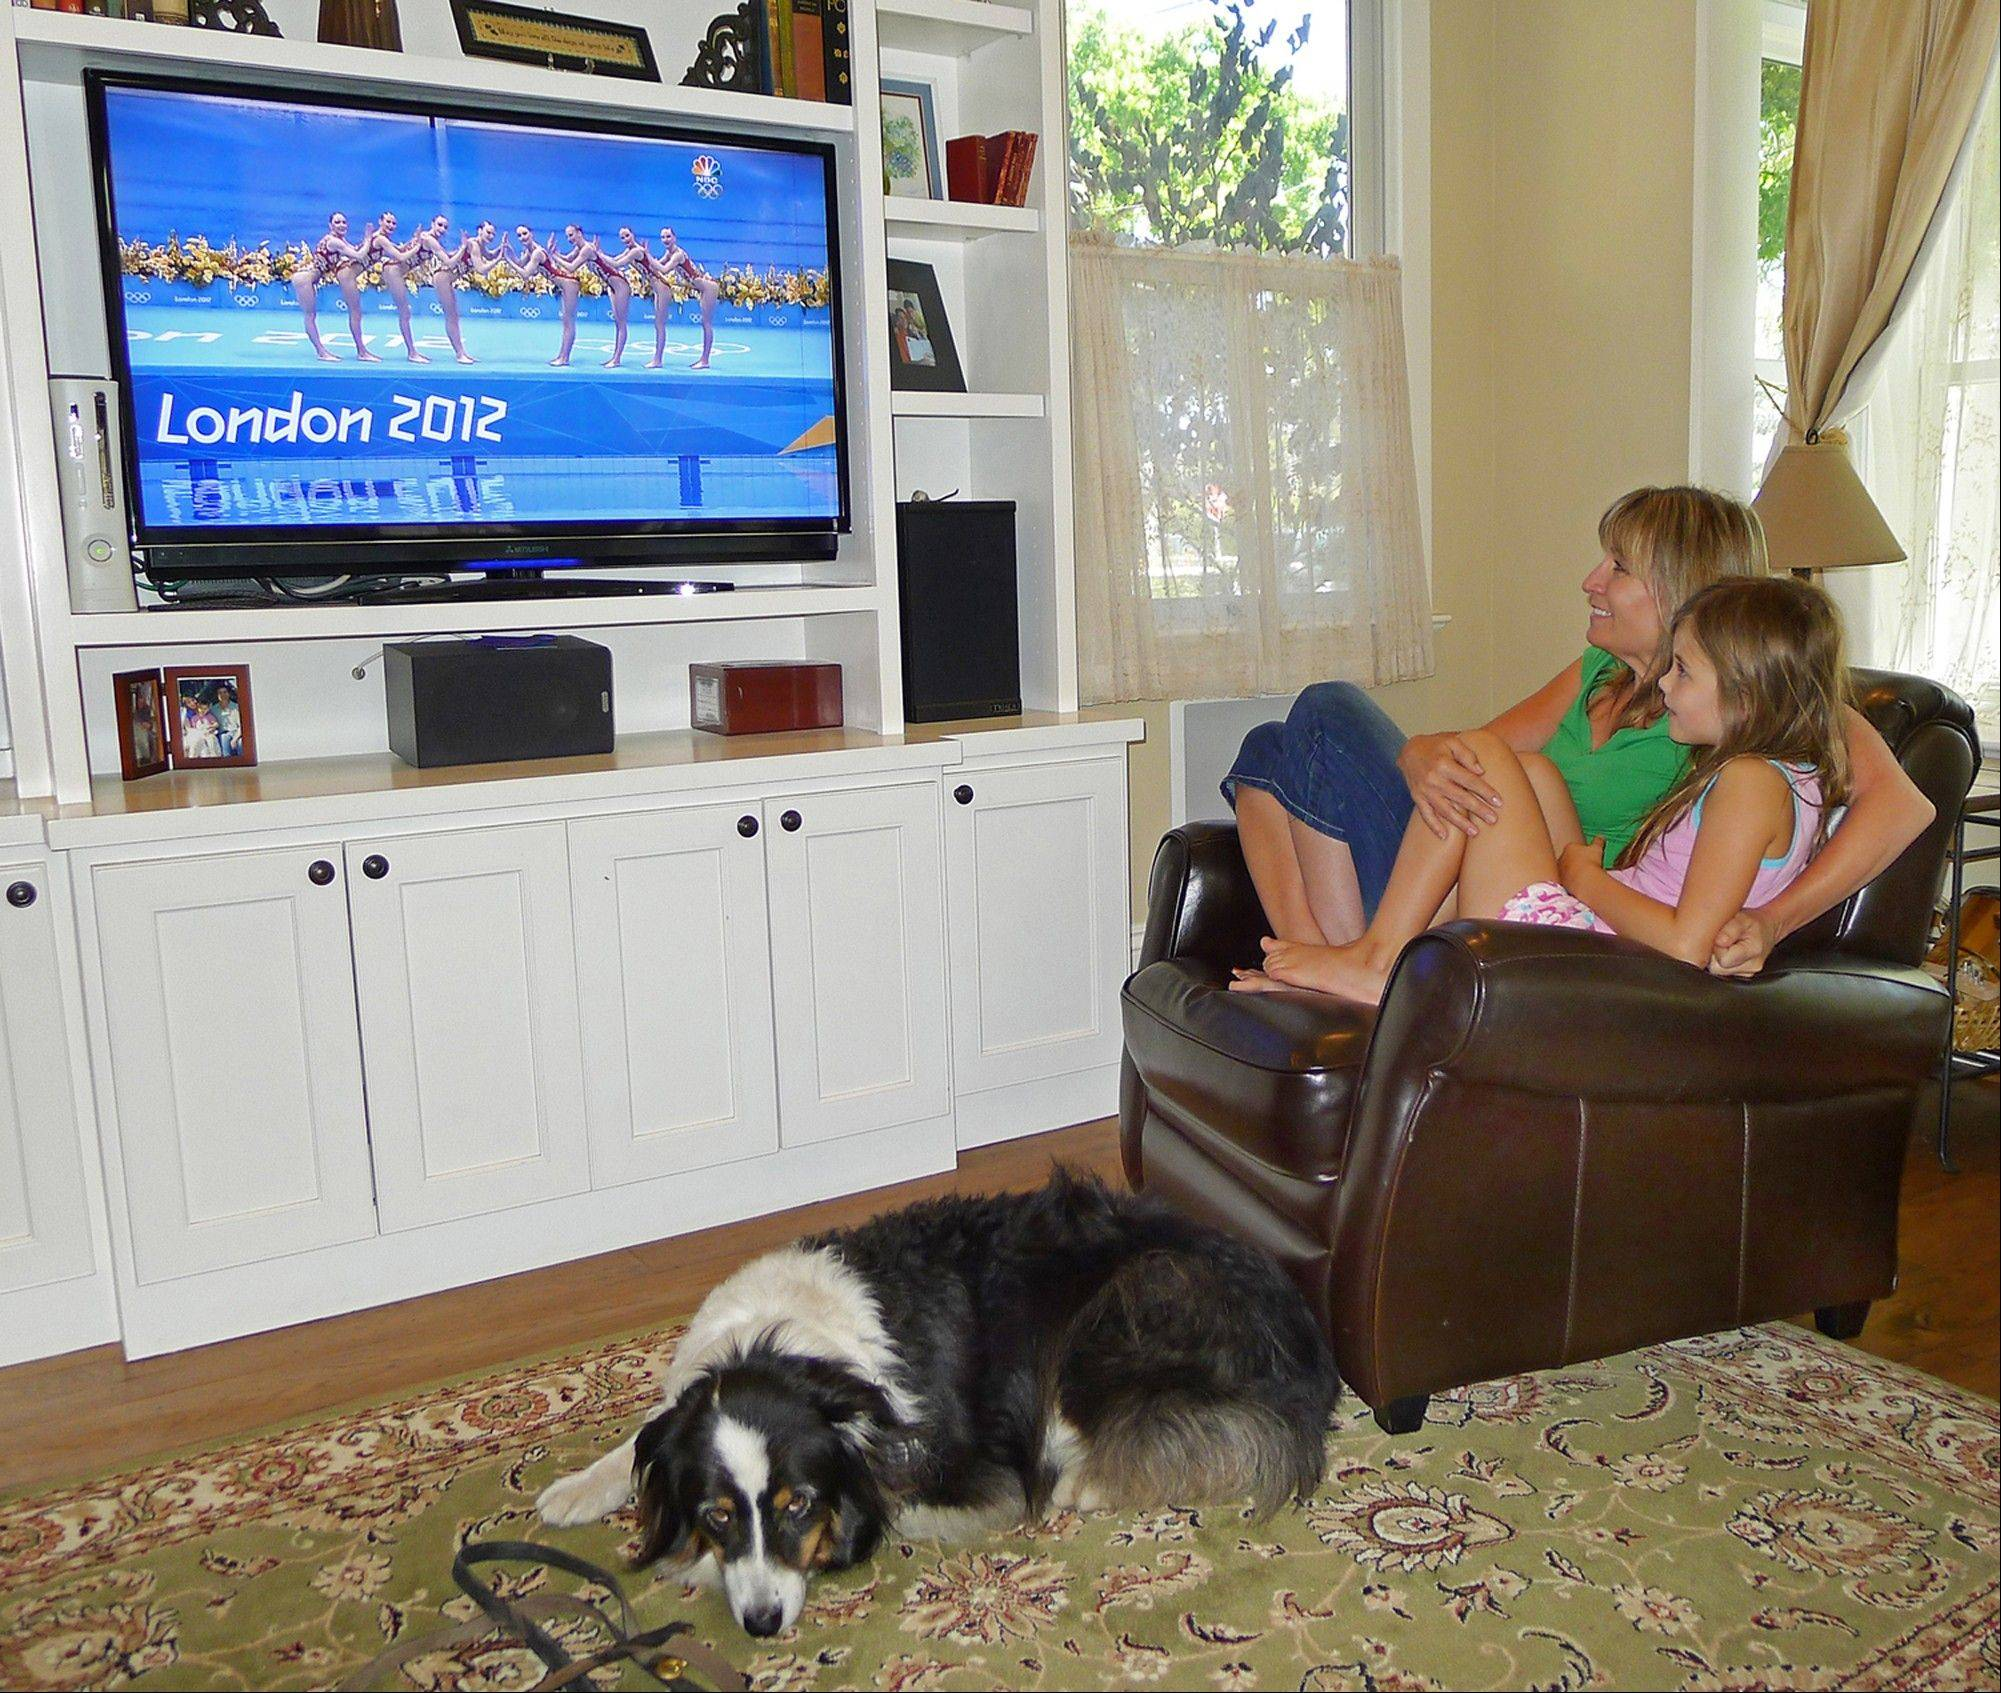 Julie O�Grady watches the 2012 Olympics with her daughter Molly and dog Bosco Thursday in her home in Palo Alto, Calif. If Bosco, Julie O�Grady�s Australian shepherd in Palo Alto, Calif., could speak, he�d likely be shrieking, �Get a grip woman!� His pained, pathetic pleas haven�t been enough to pry the tech industry public relations specialist away from the Olympics. Nearly eight in 10 Americans, have watched or followed the games either on television, online or via social networks, according to a survey done Aug. 2-5 by the Pew Research Center for the People & the Press.